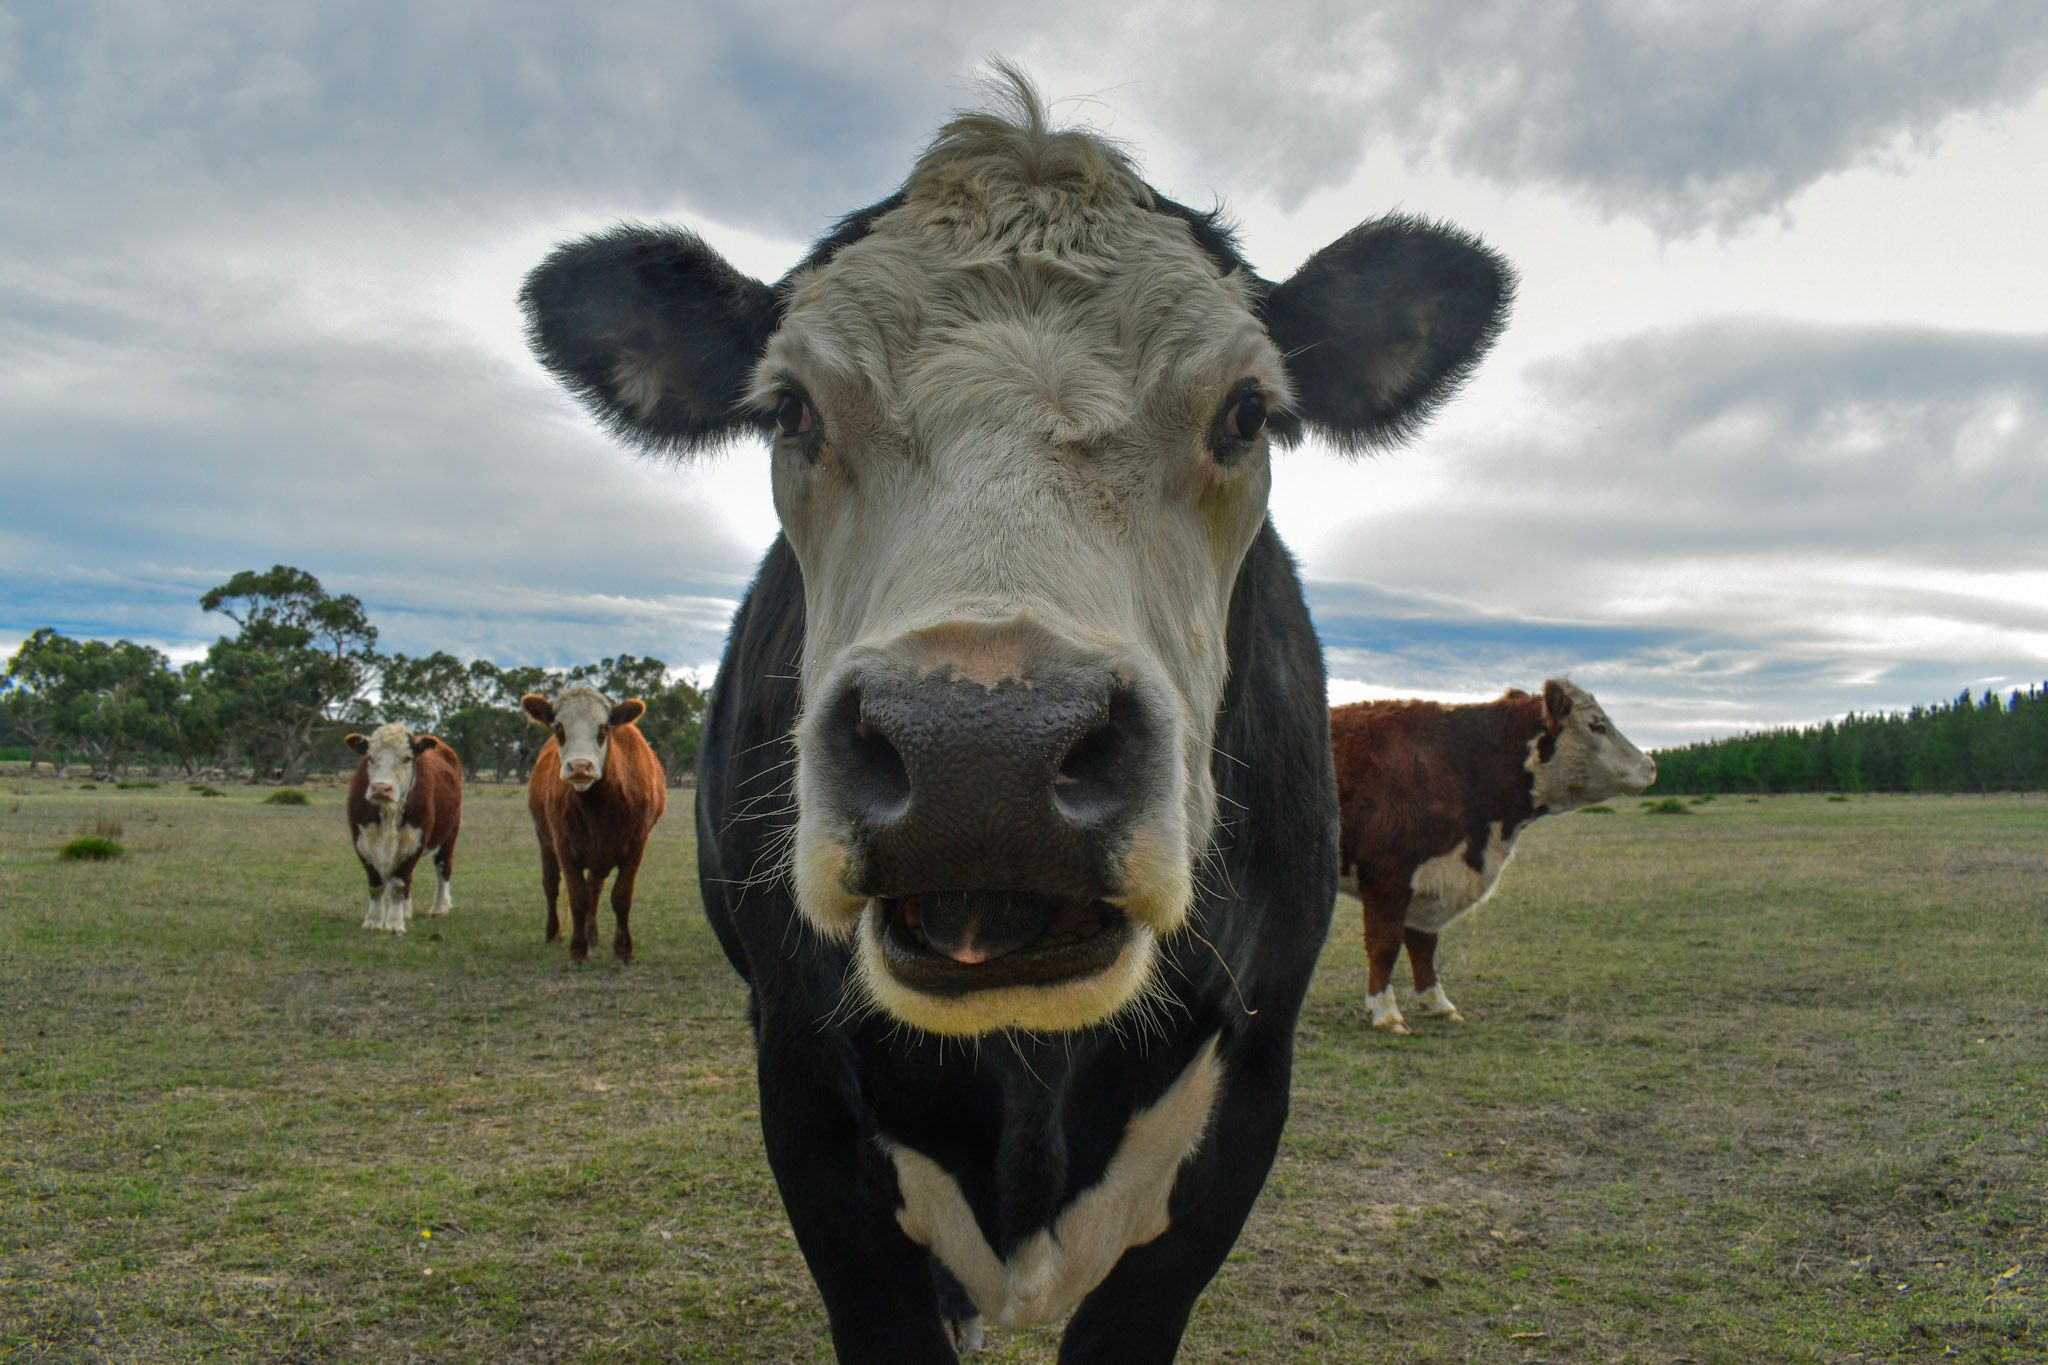 A photo of cows